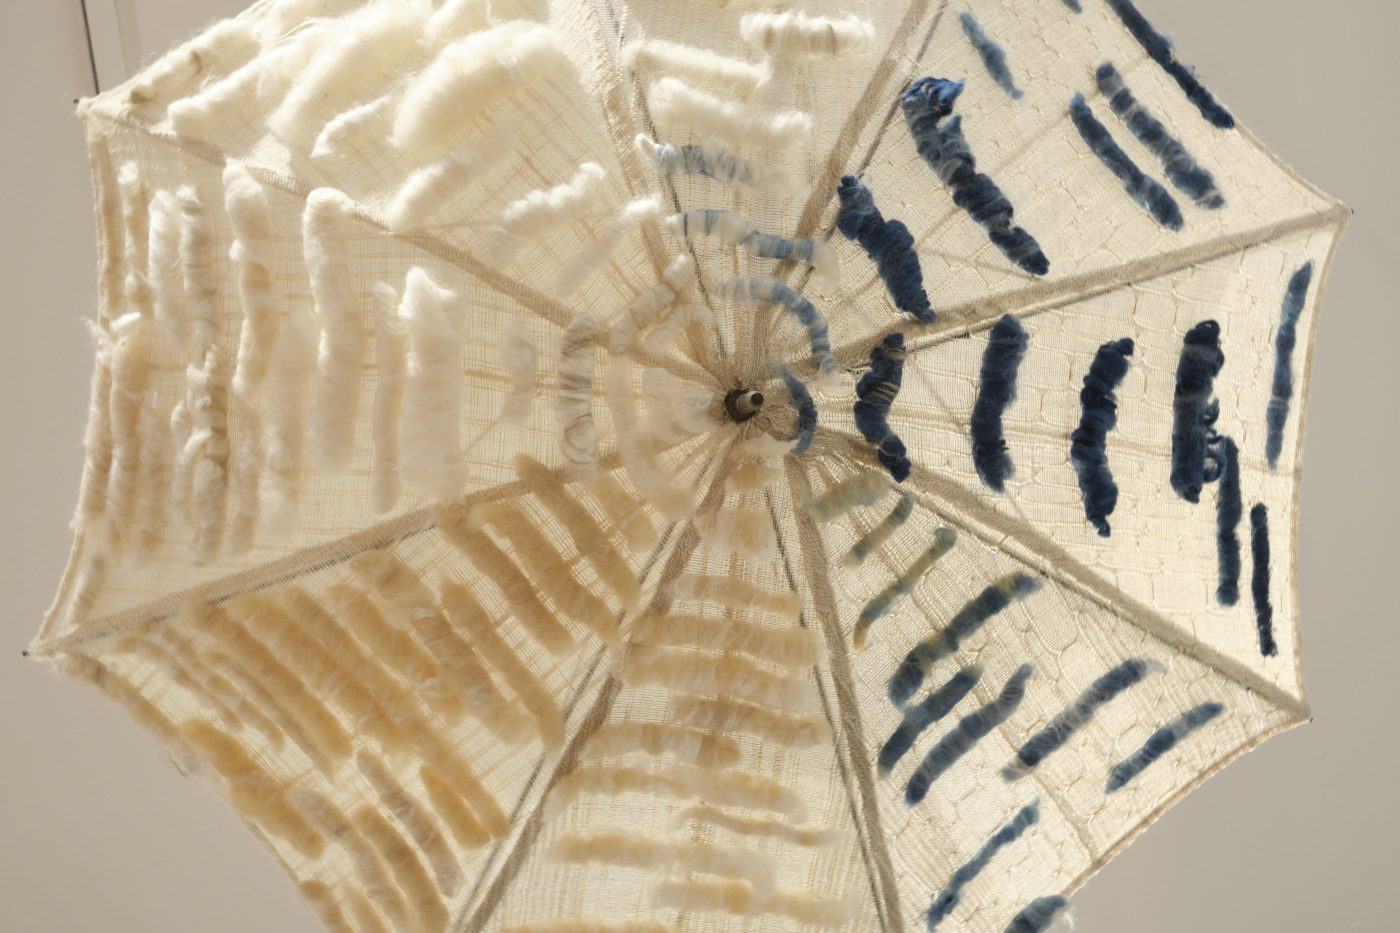 Open umbrella hung from the ceiling, covered in an open weave cream cloth with blue, yellow and cream role of fibre applied to the surface